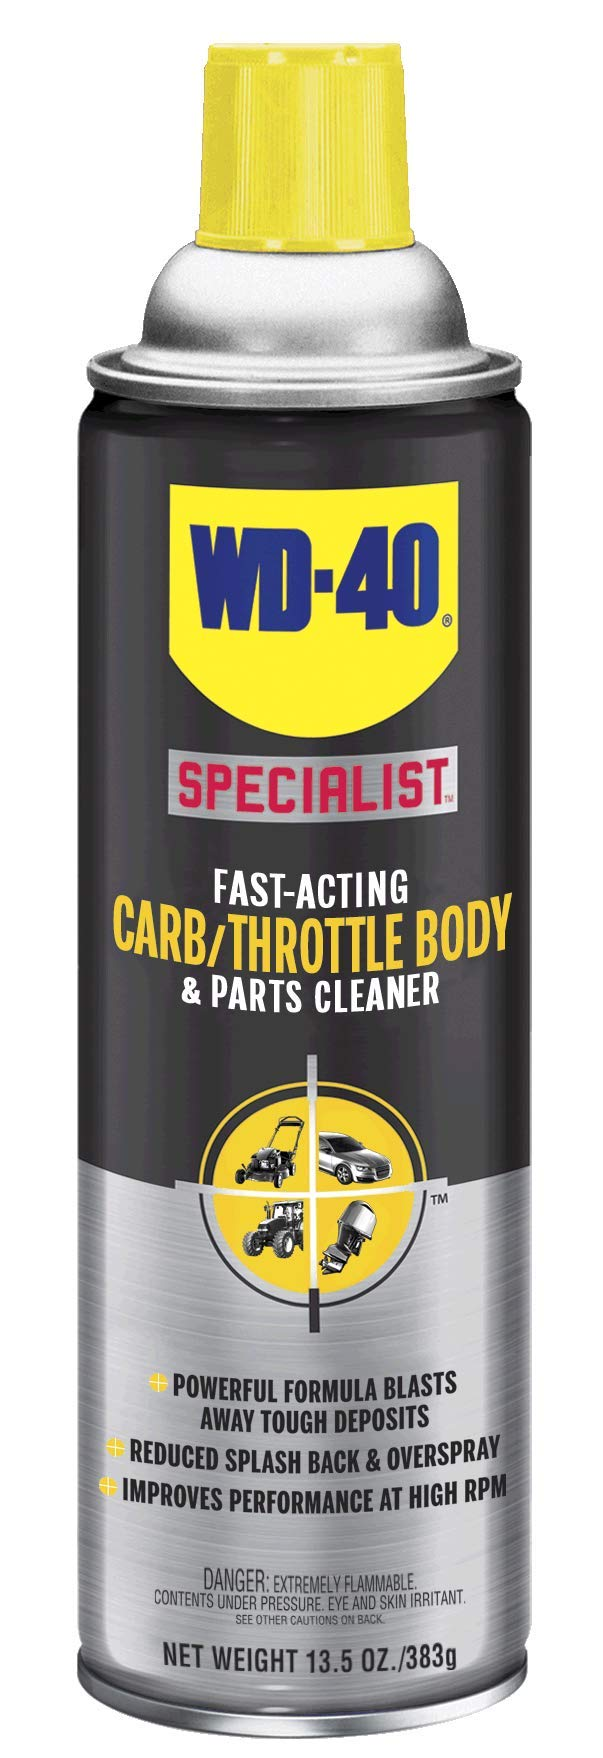 Best Rated in Carburetor & Throttle Body Cleaners & Helpful